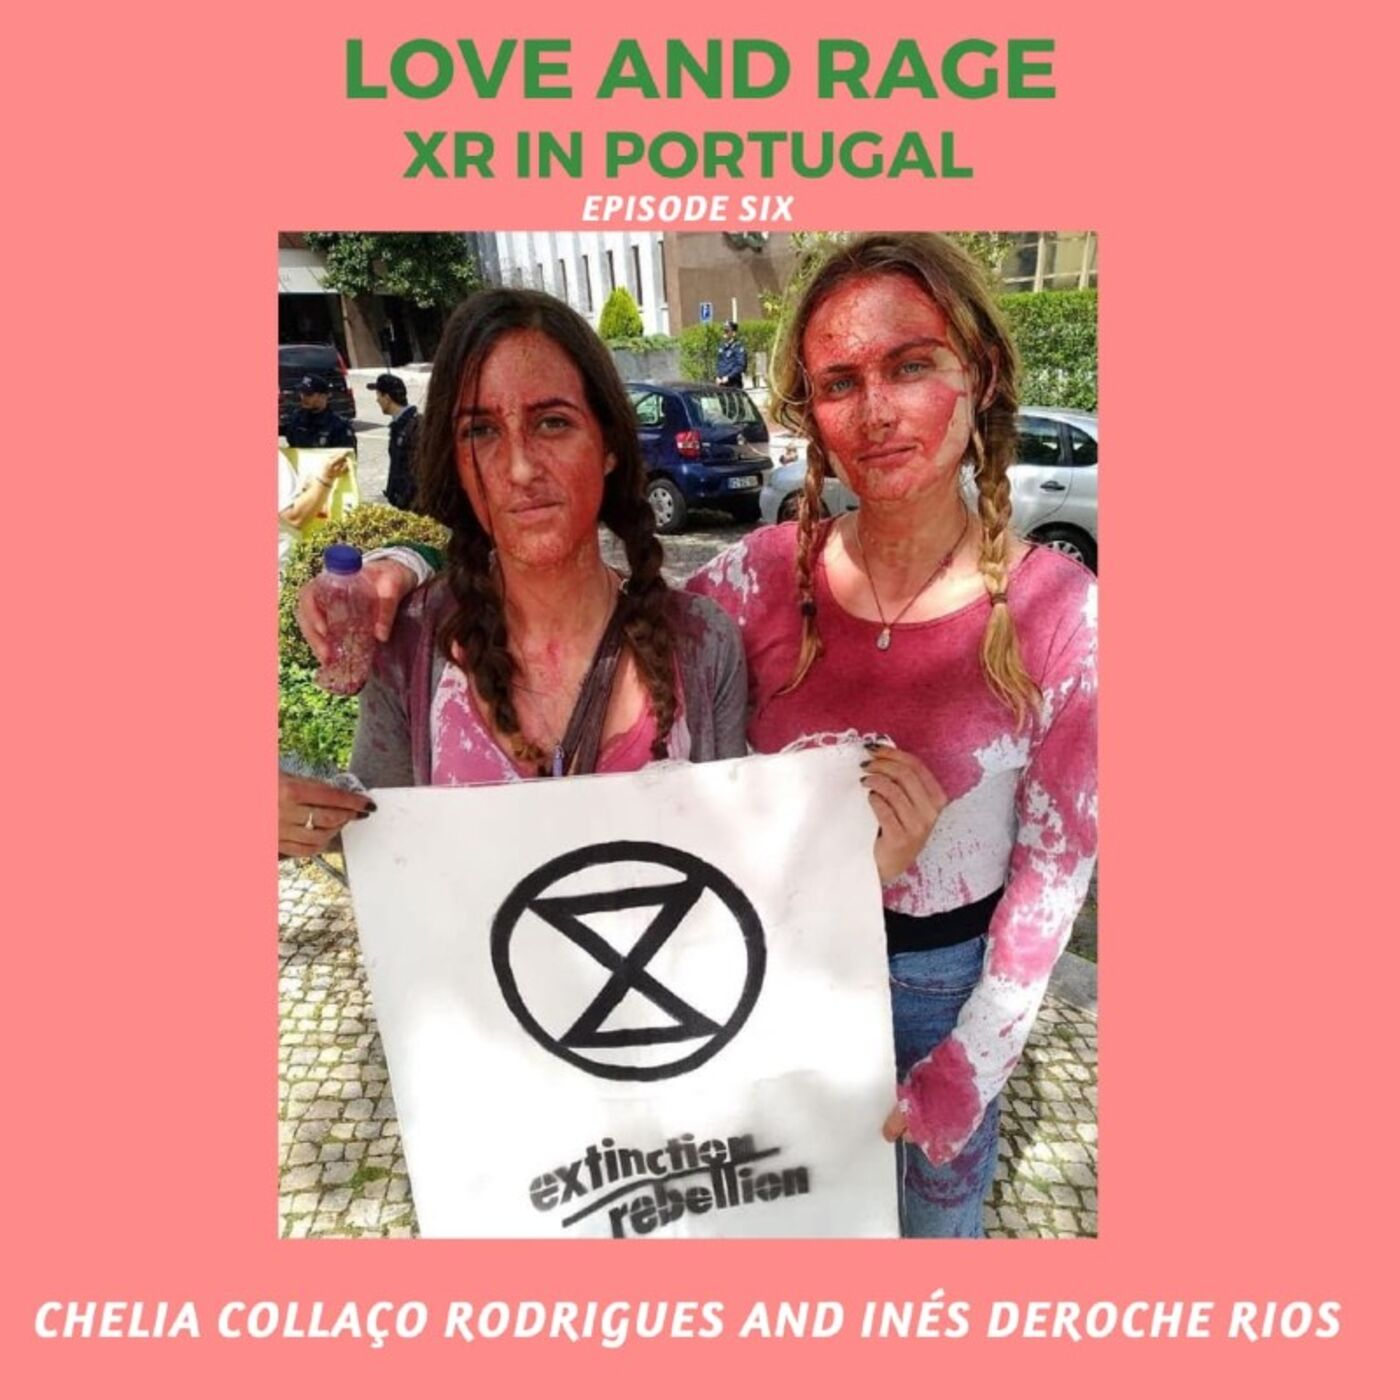 Love and Rage - XR in Portugal with Cheila Collaço Rodrigues and Inès Deroche Rios